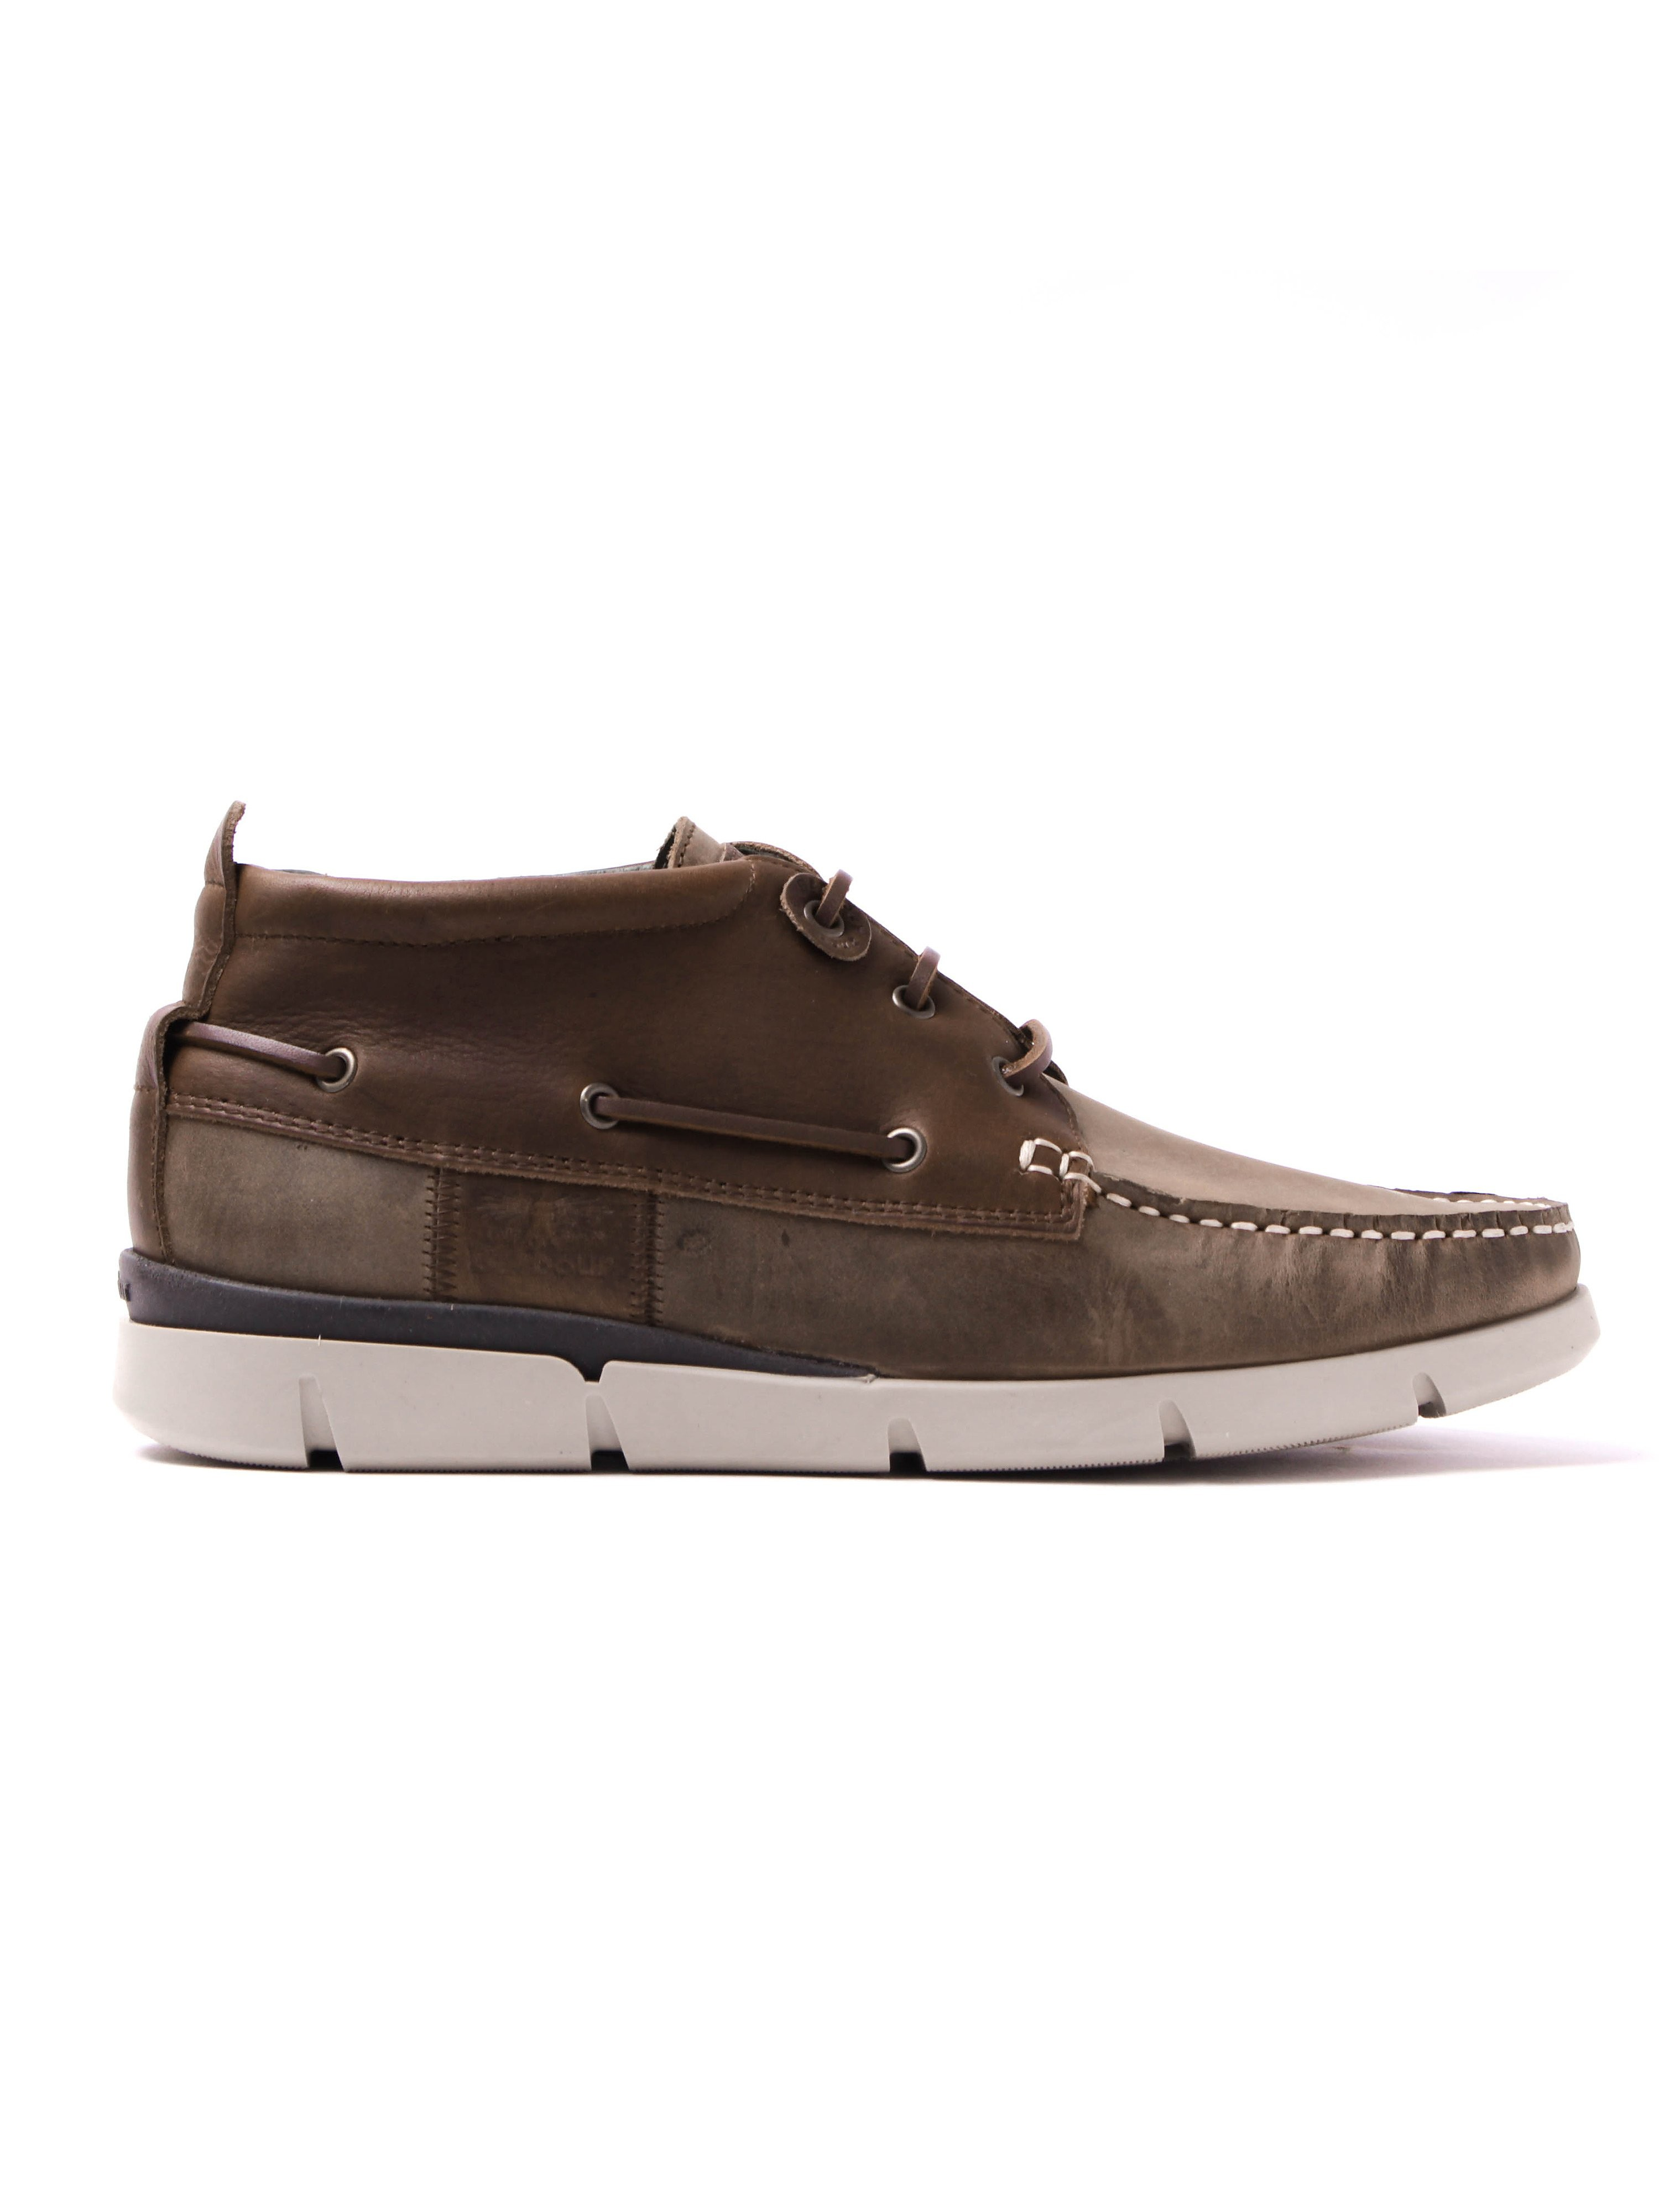 Barbour Men's Phill Aged Leather Boat Shoes - Beige & Brown